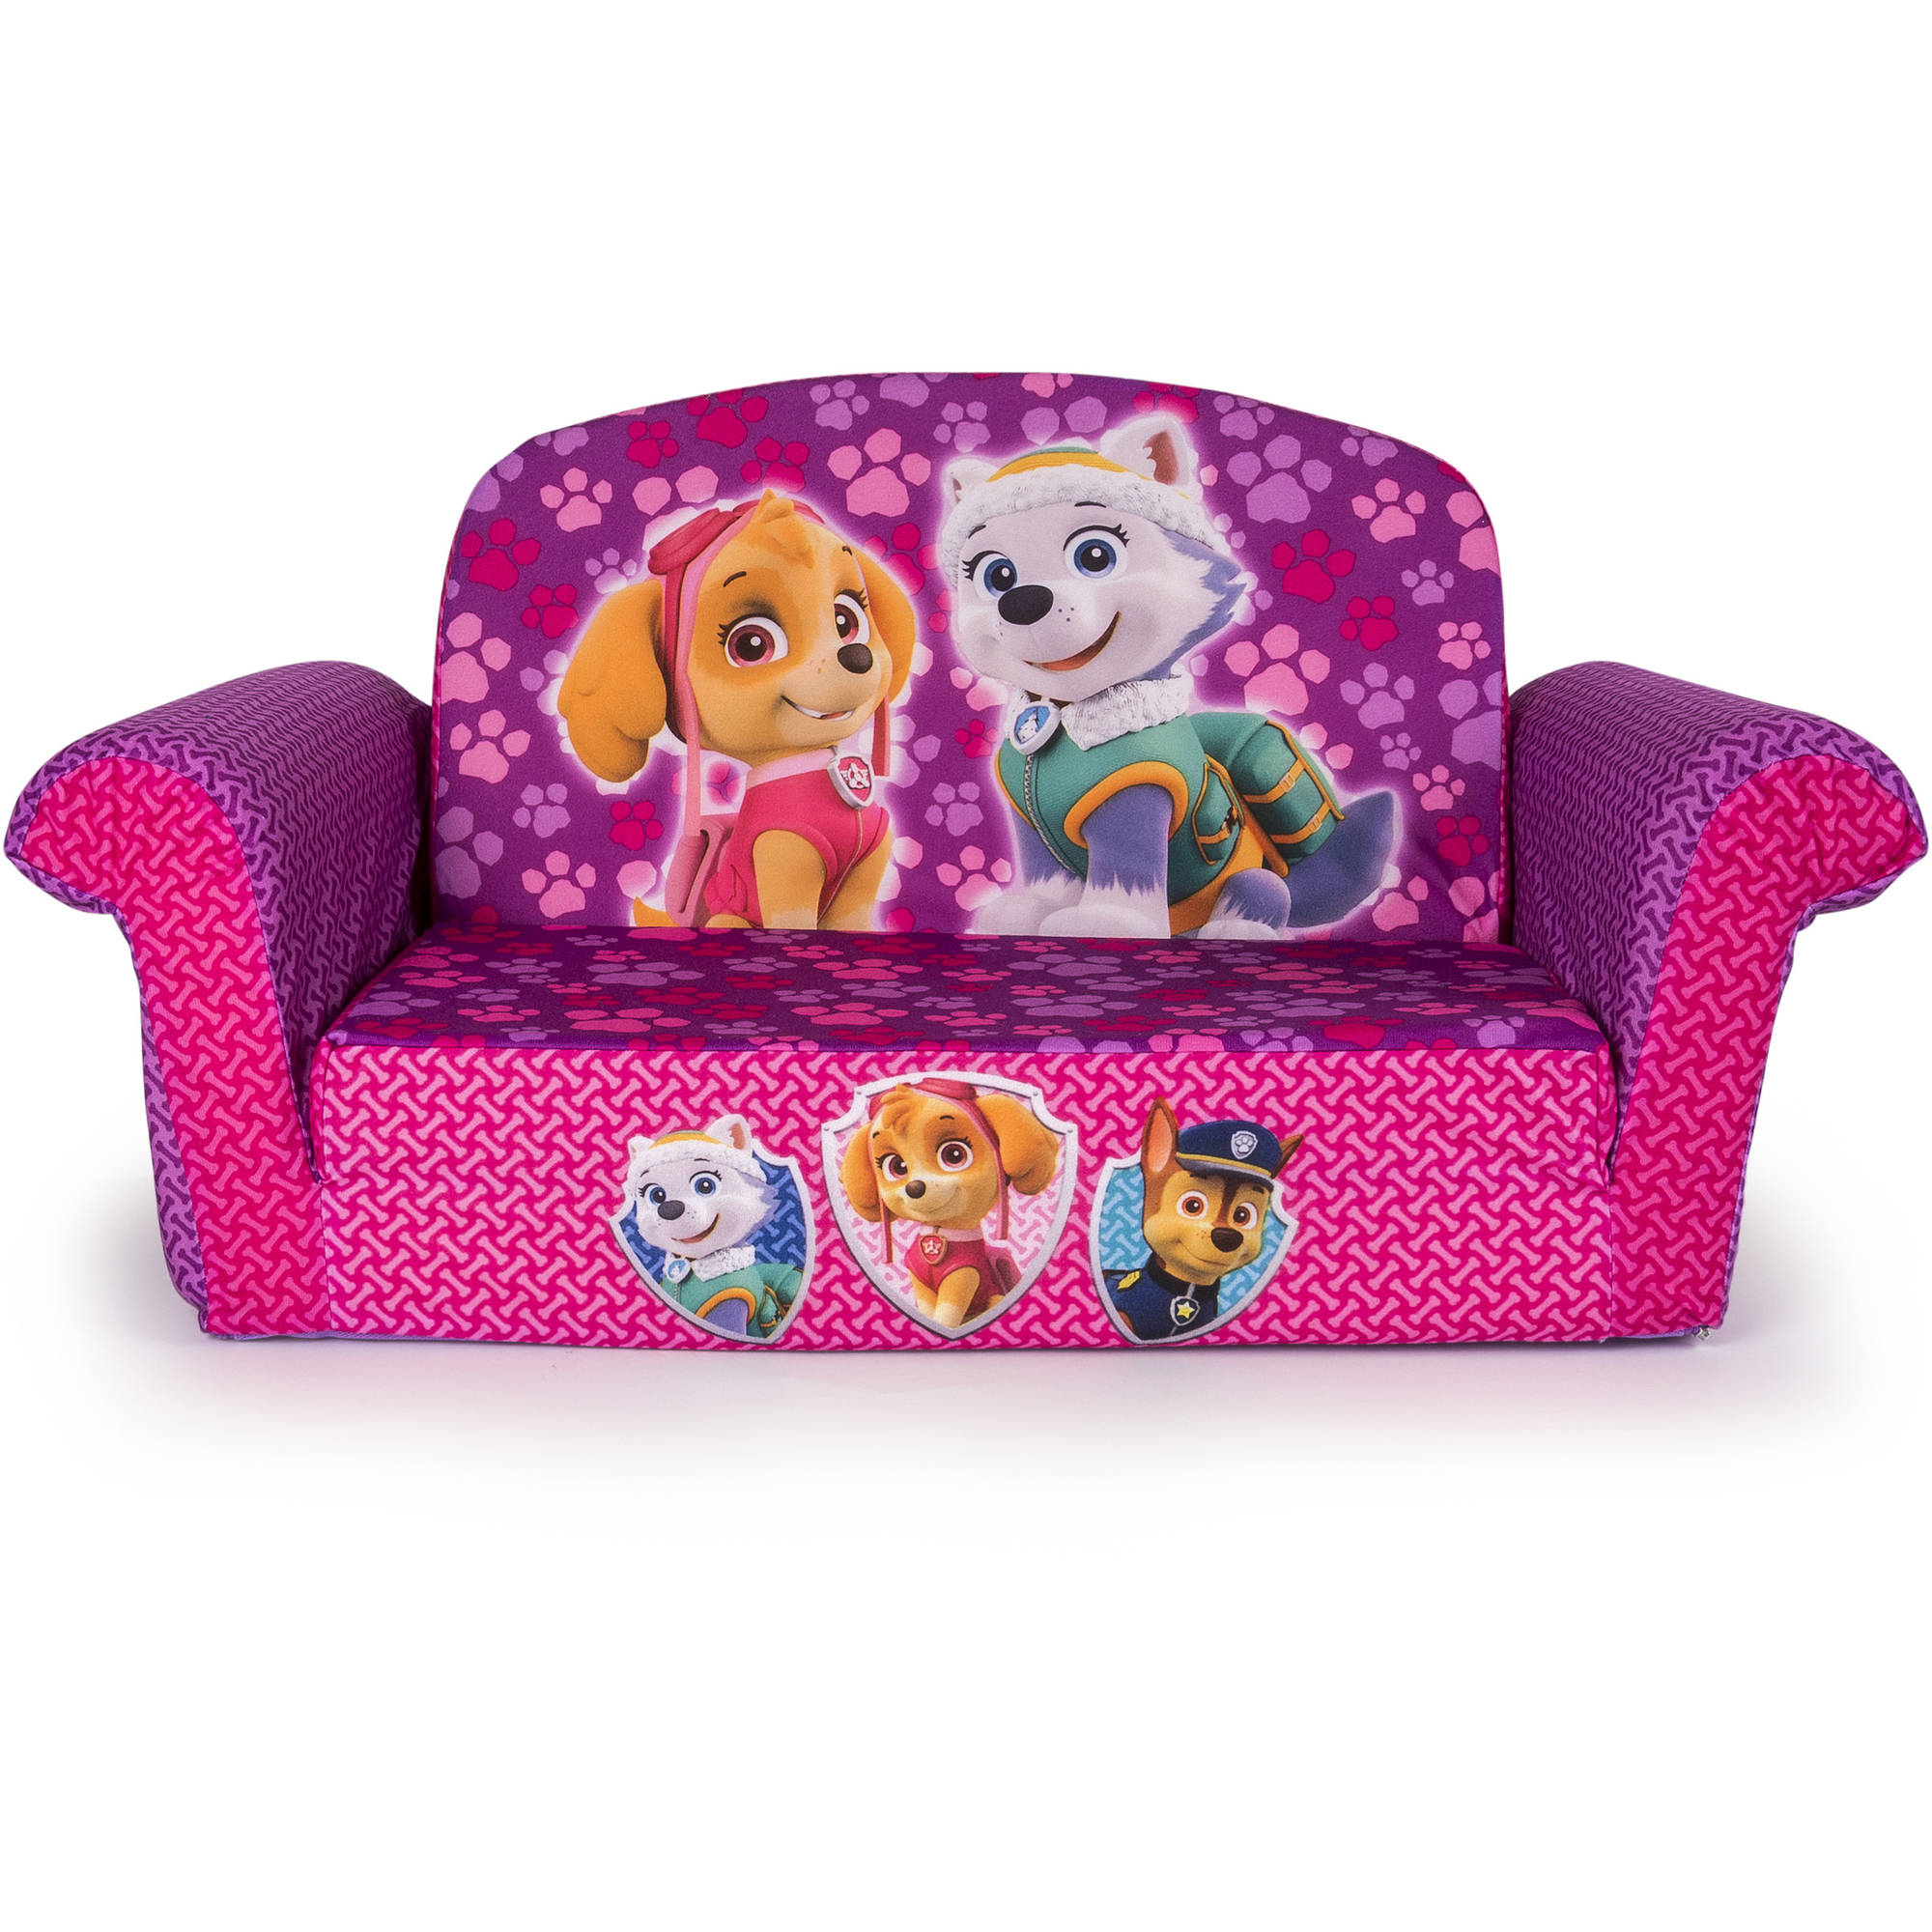 marshmallow 2 in 1 flip open sofa paw patrol pink edition